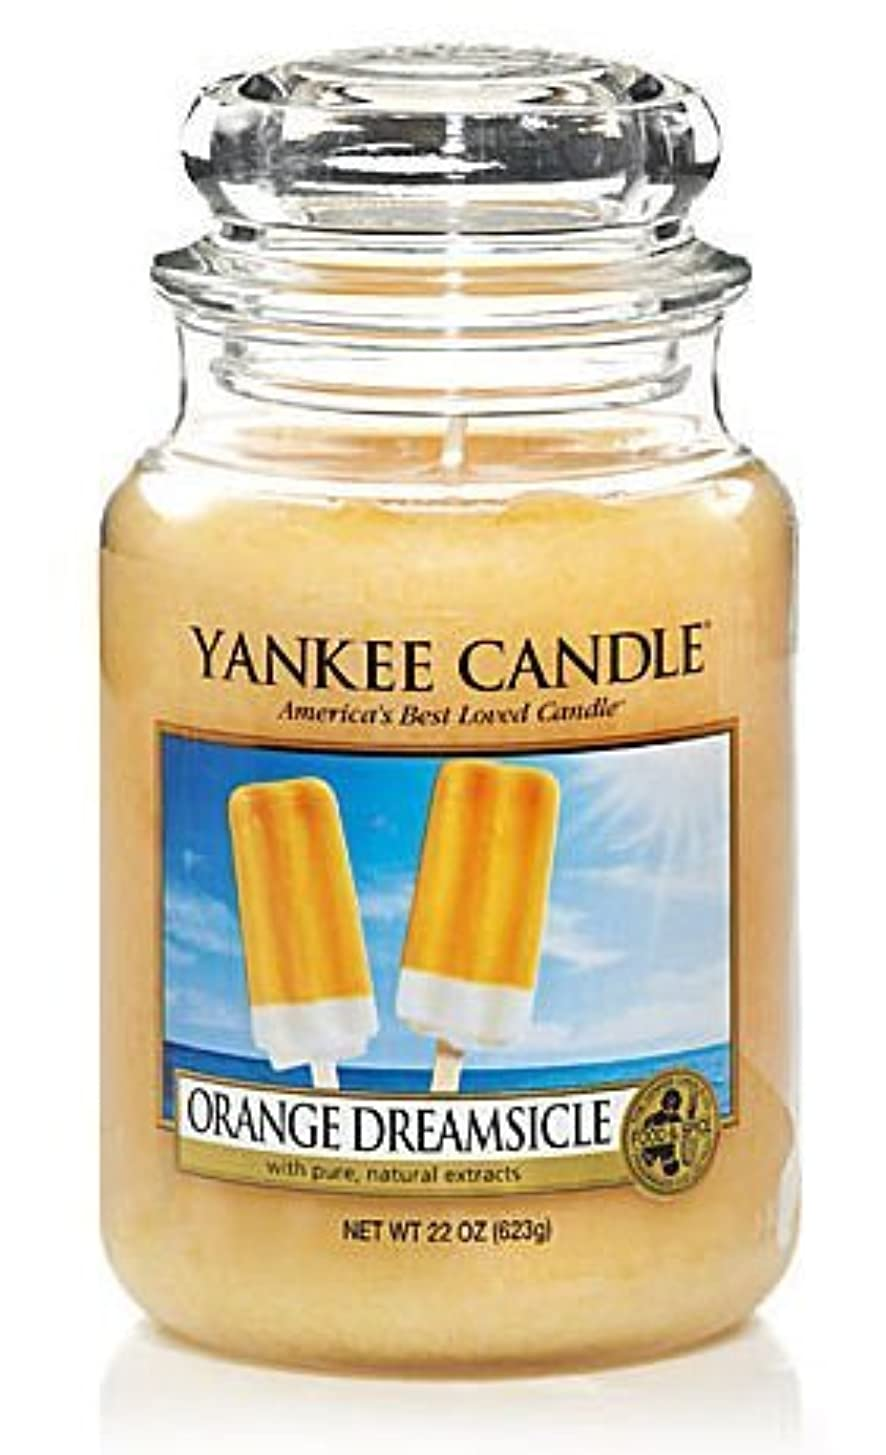 手錠トイレ動力学Yankee Candle Orange Dreamsicle Large Jar Candle, Food & Spice Scent by Yankee Candle [並行輸入品]